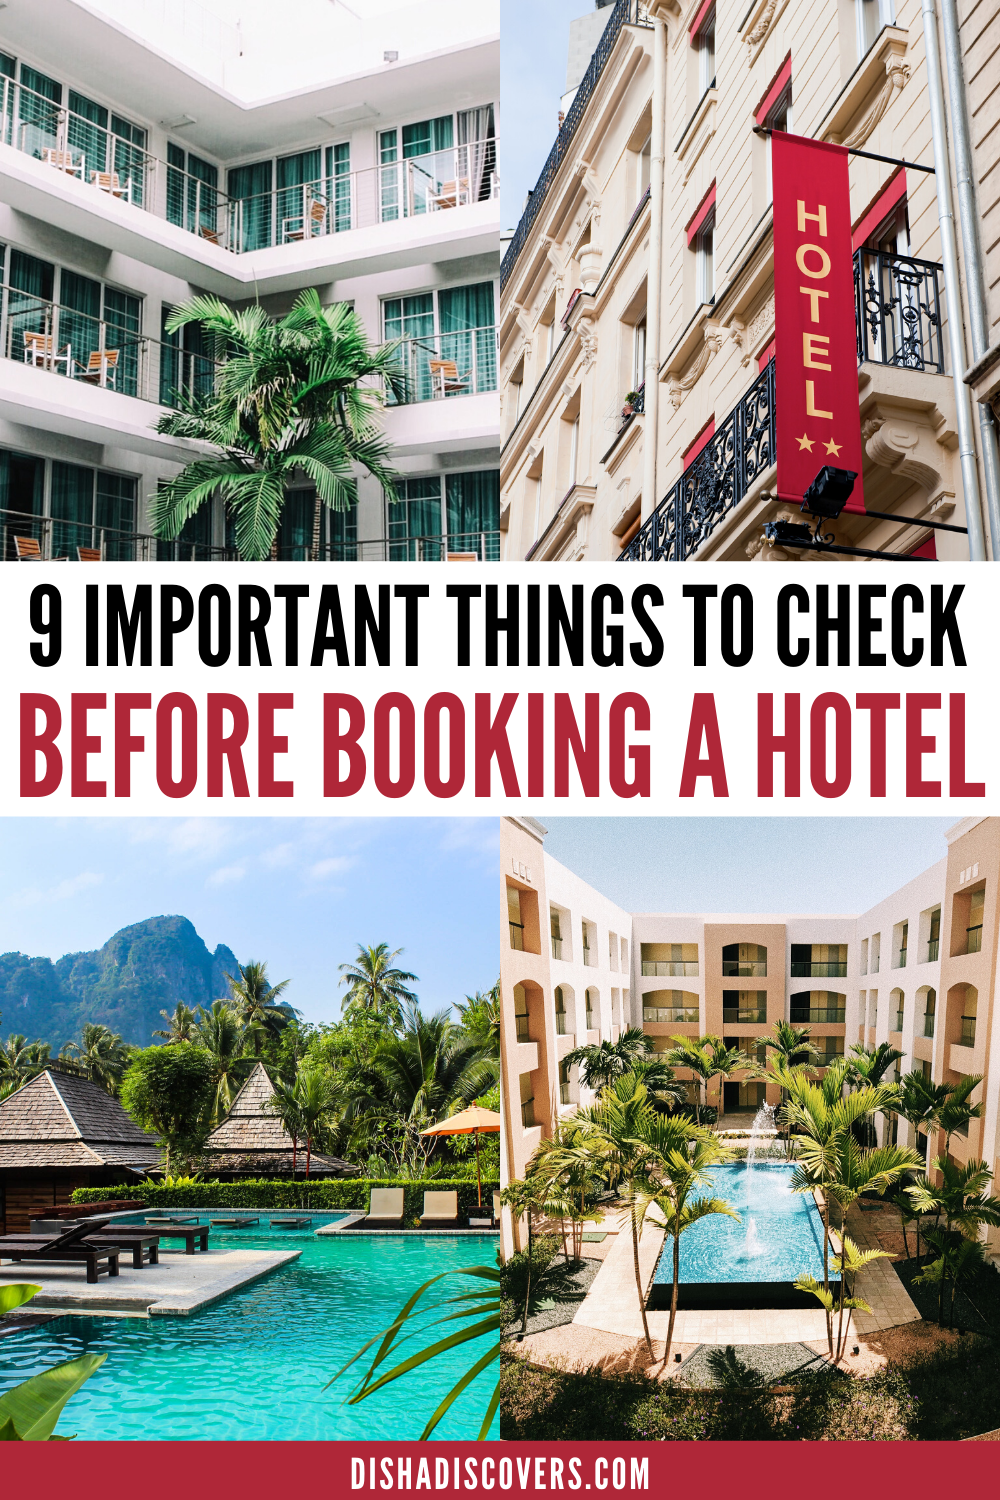 Travel Accommodation Tips: 9 Most Important Factors to Consider Before Booking a Hotel - Are you stressing out about travel accommodations and finding the right hotel? These travel accommodation tips will take some of that stress away. Follow these nine hotel tips so you can find the perfect travel accommodations. | Hotels tips hacks | Hotel tips and tricks | #traveltips #hotels #accommodation #hotelhacks #hoteltips